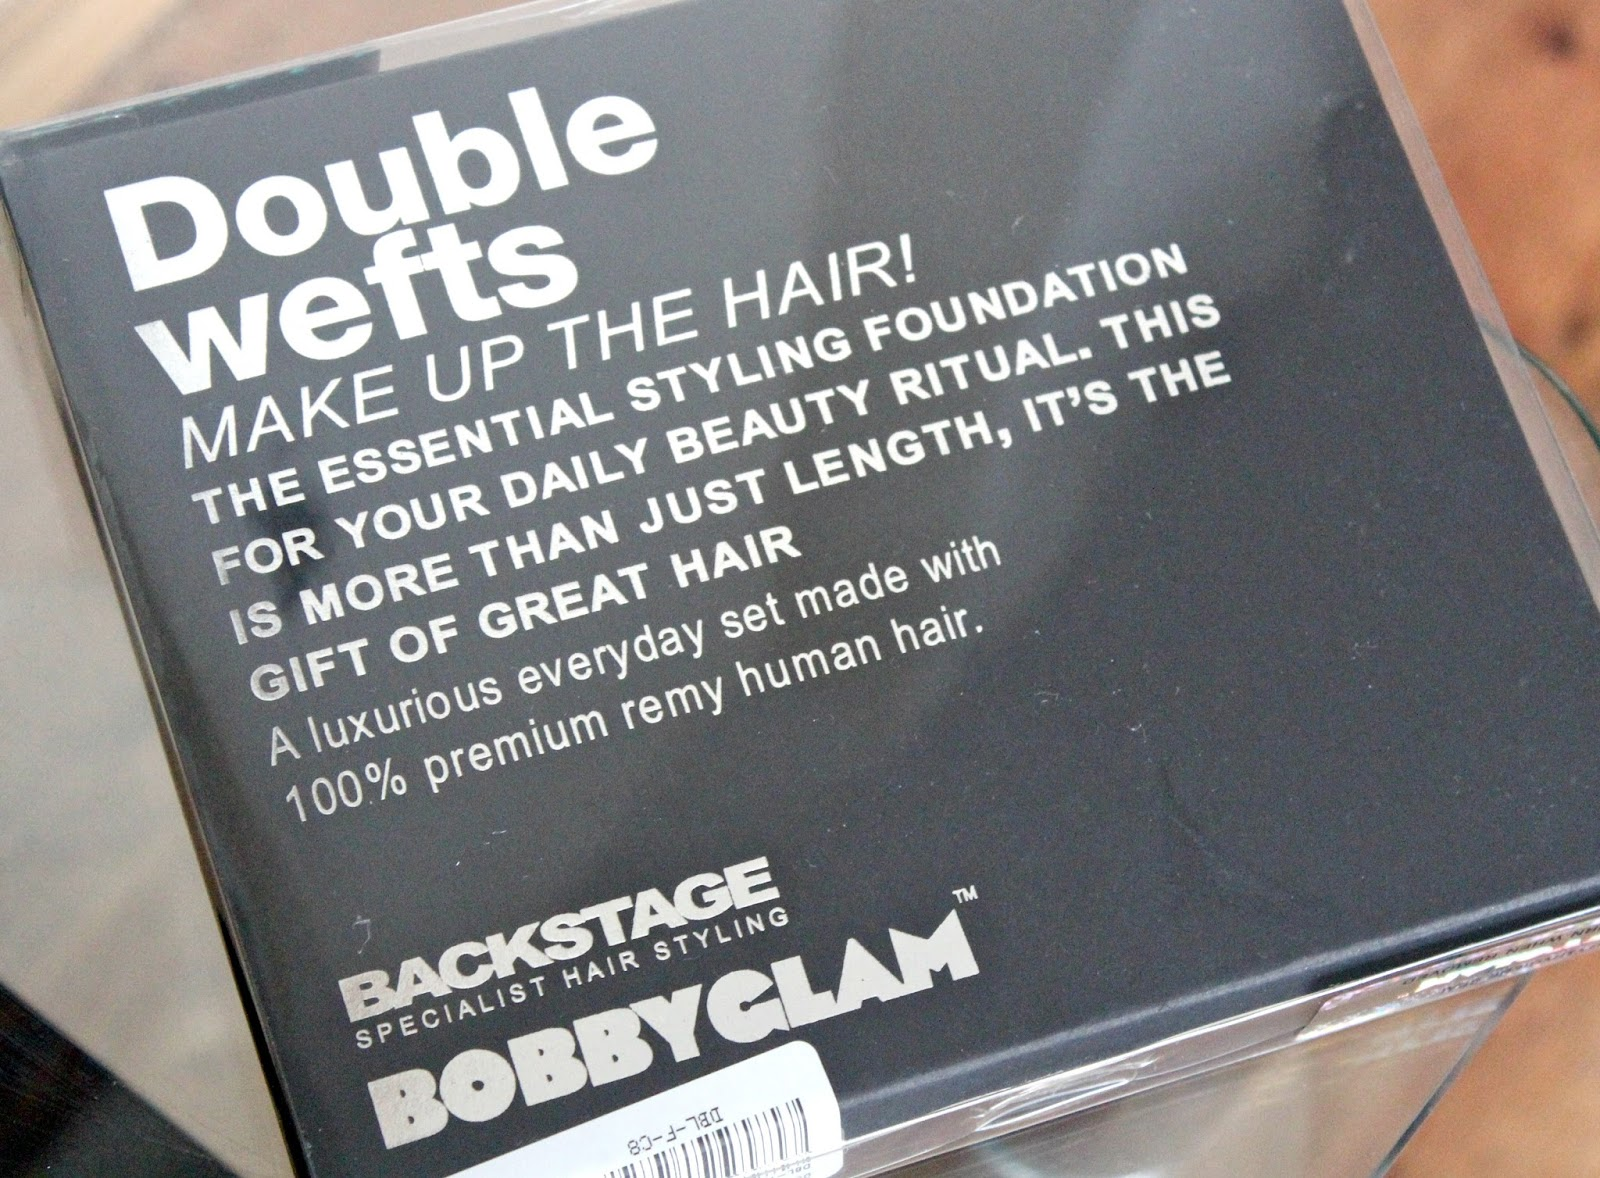 Review Bobby Glam Double Weft Hair Extensions Couture Girl